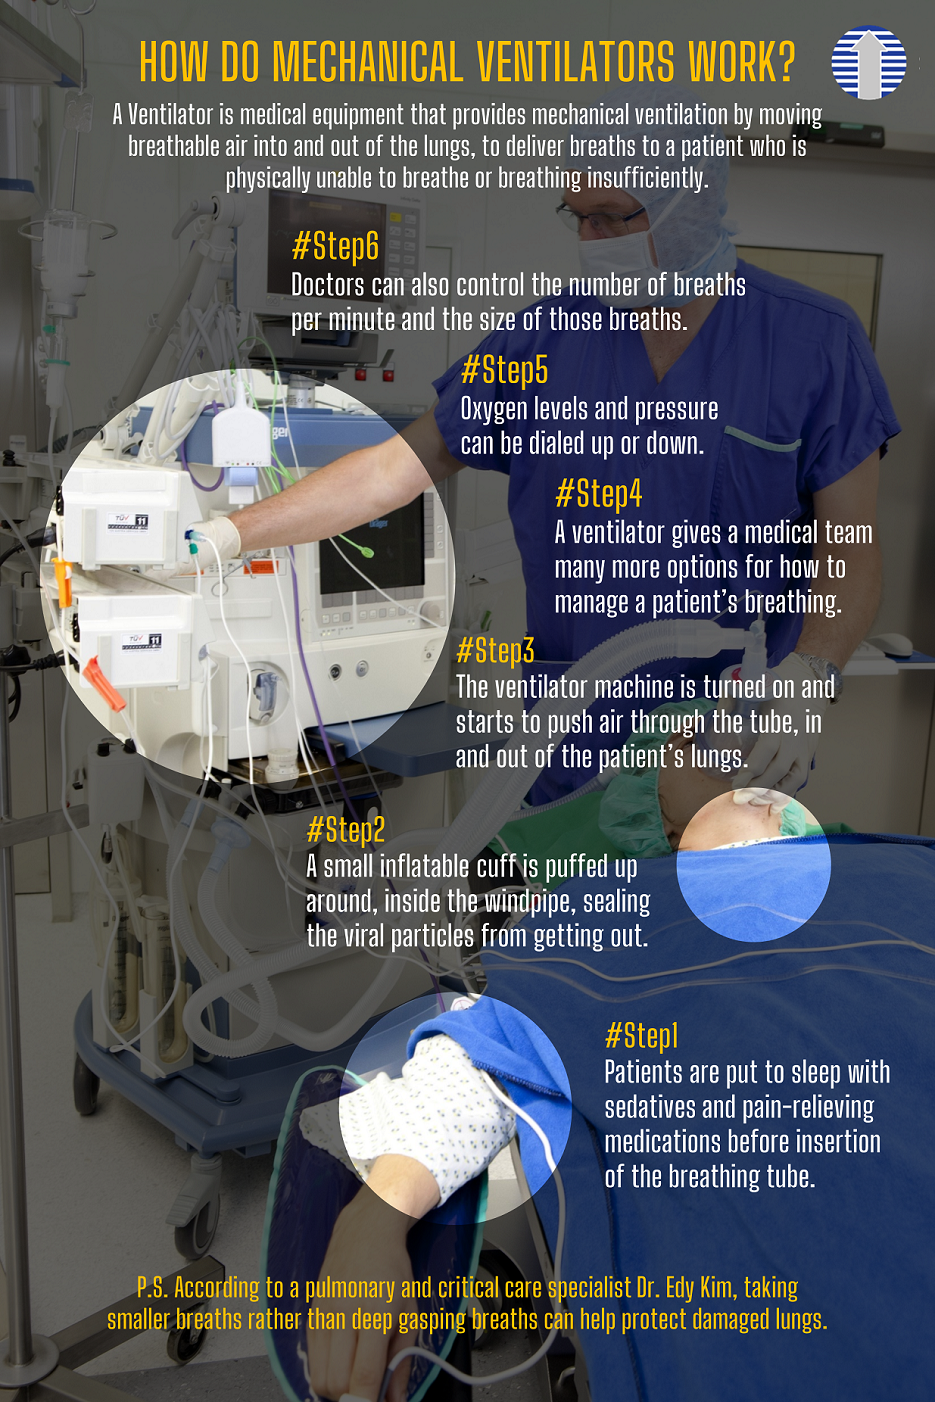 HOW DO MECHANICAL VENTILATORS WORK